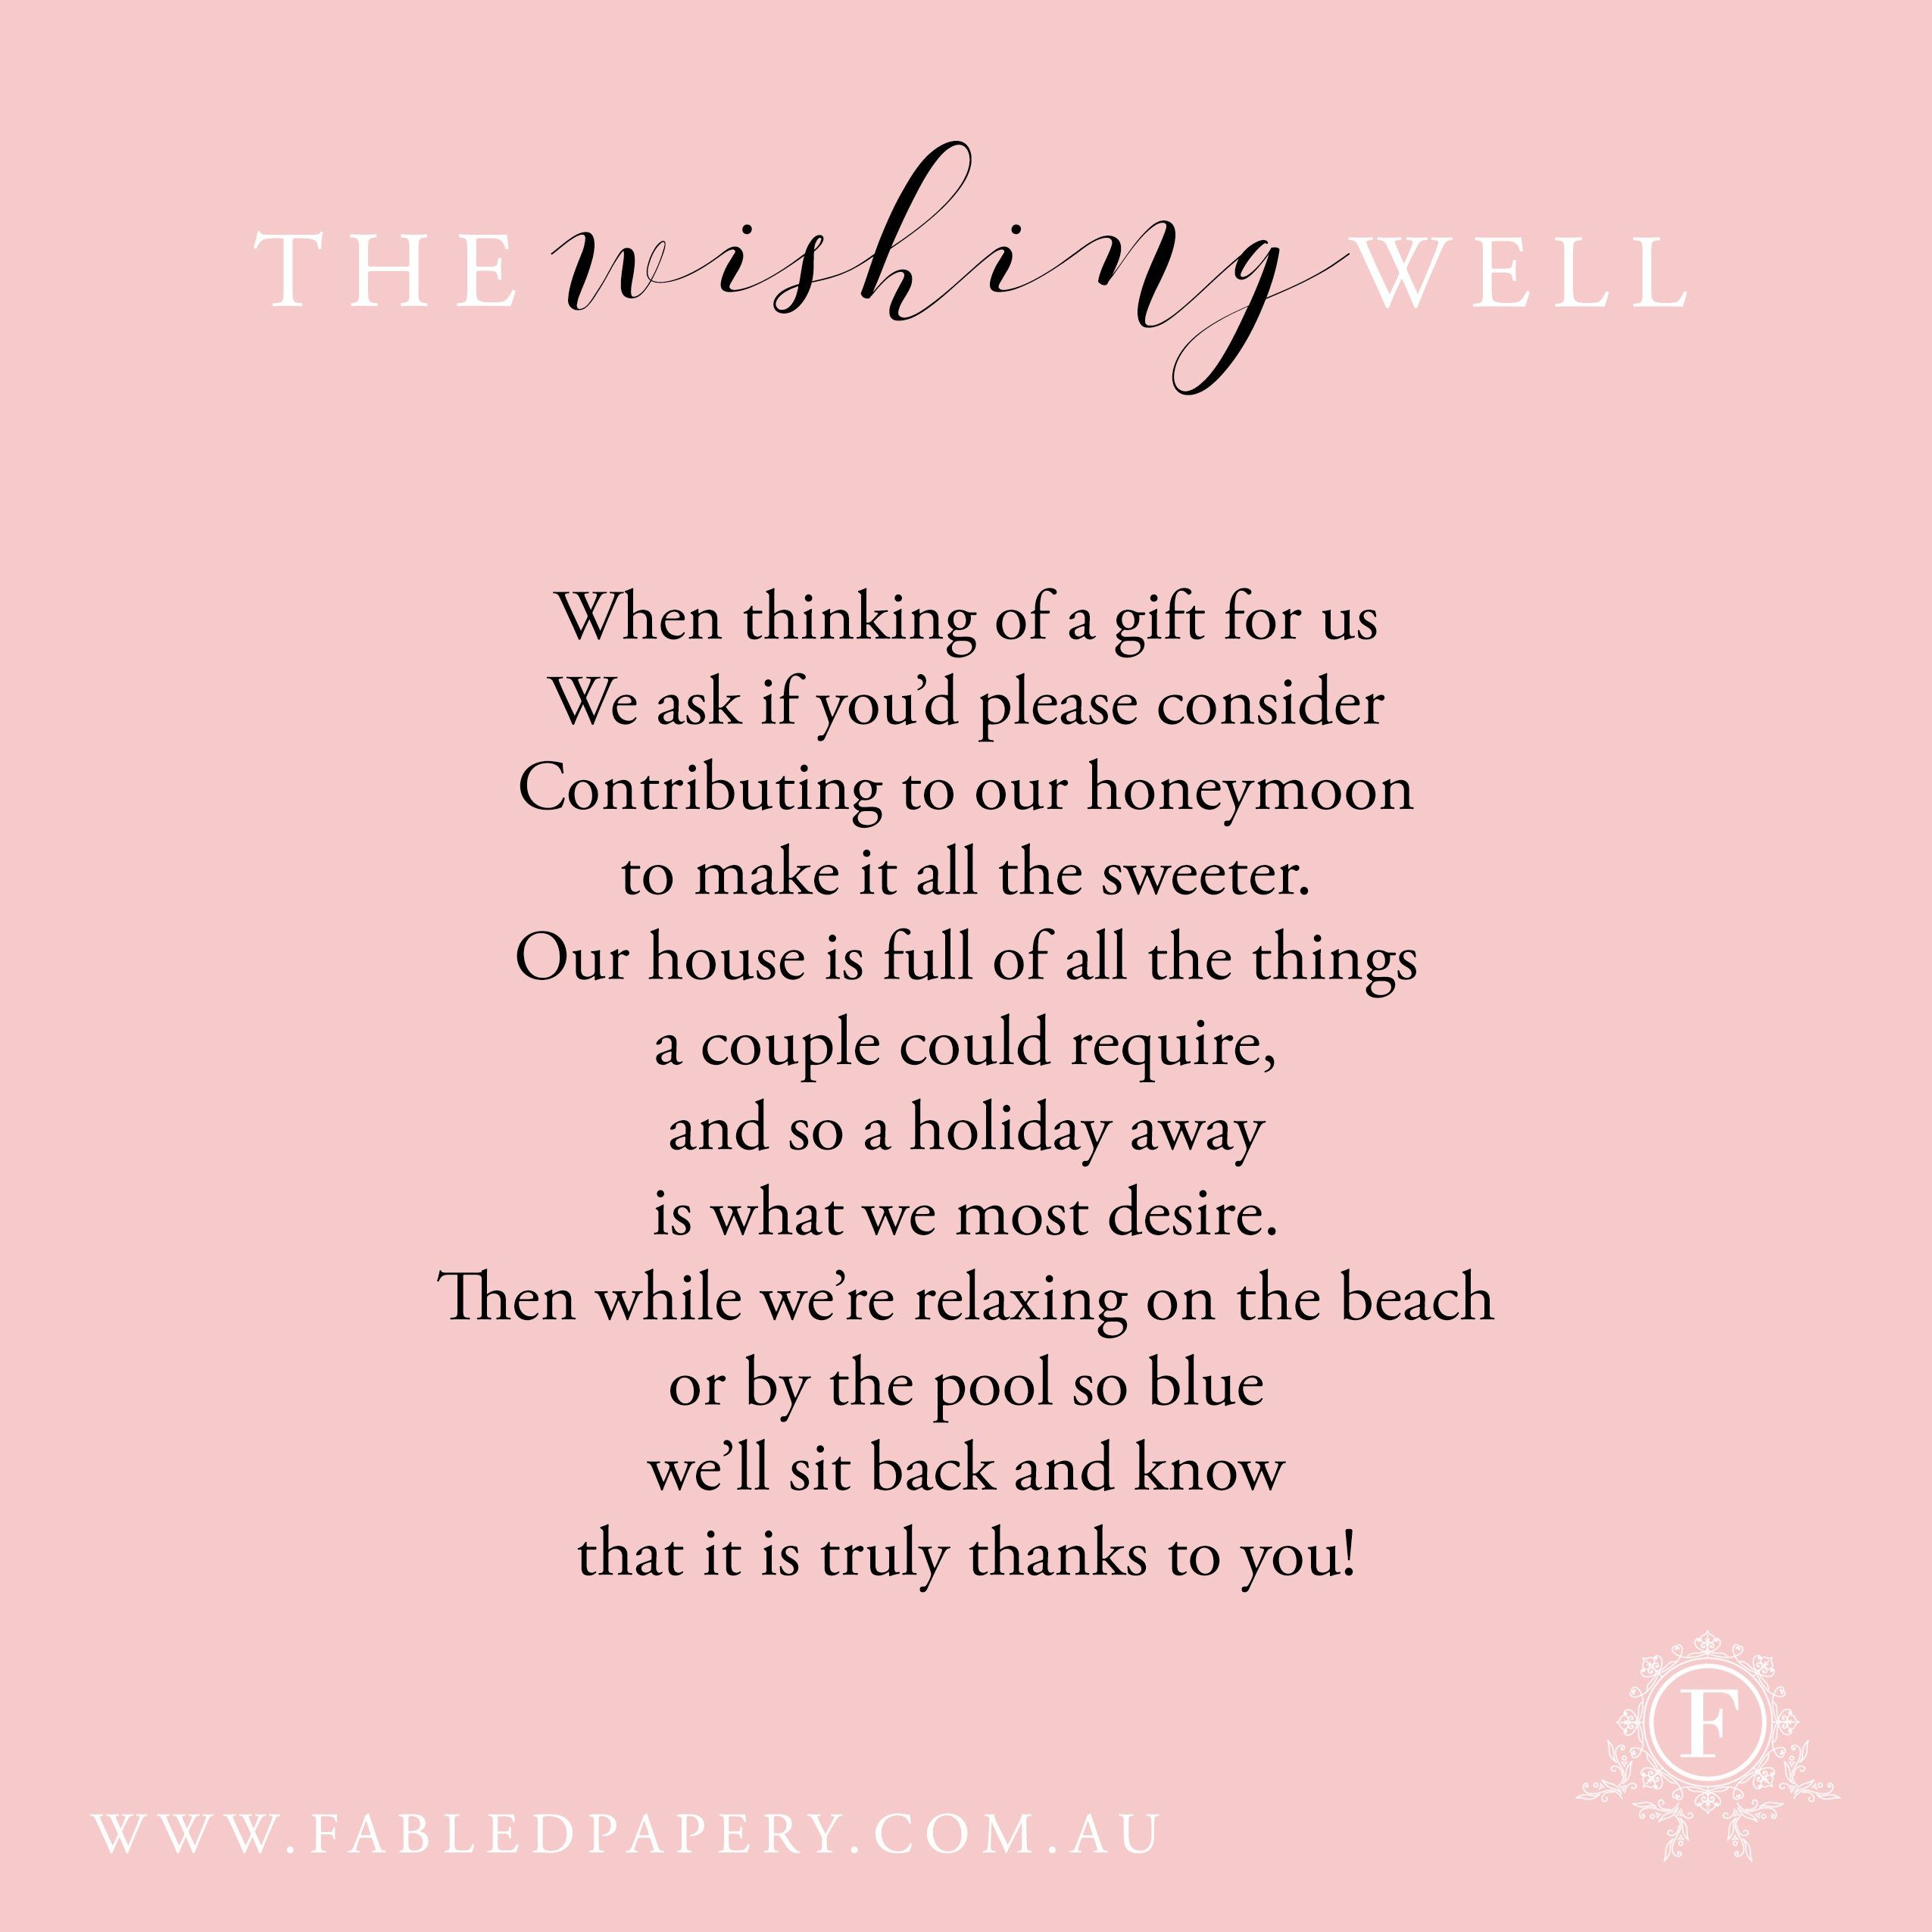 Wishing Well Poems | weddings | Pinterest | Poem, Wedding and Weddings